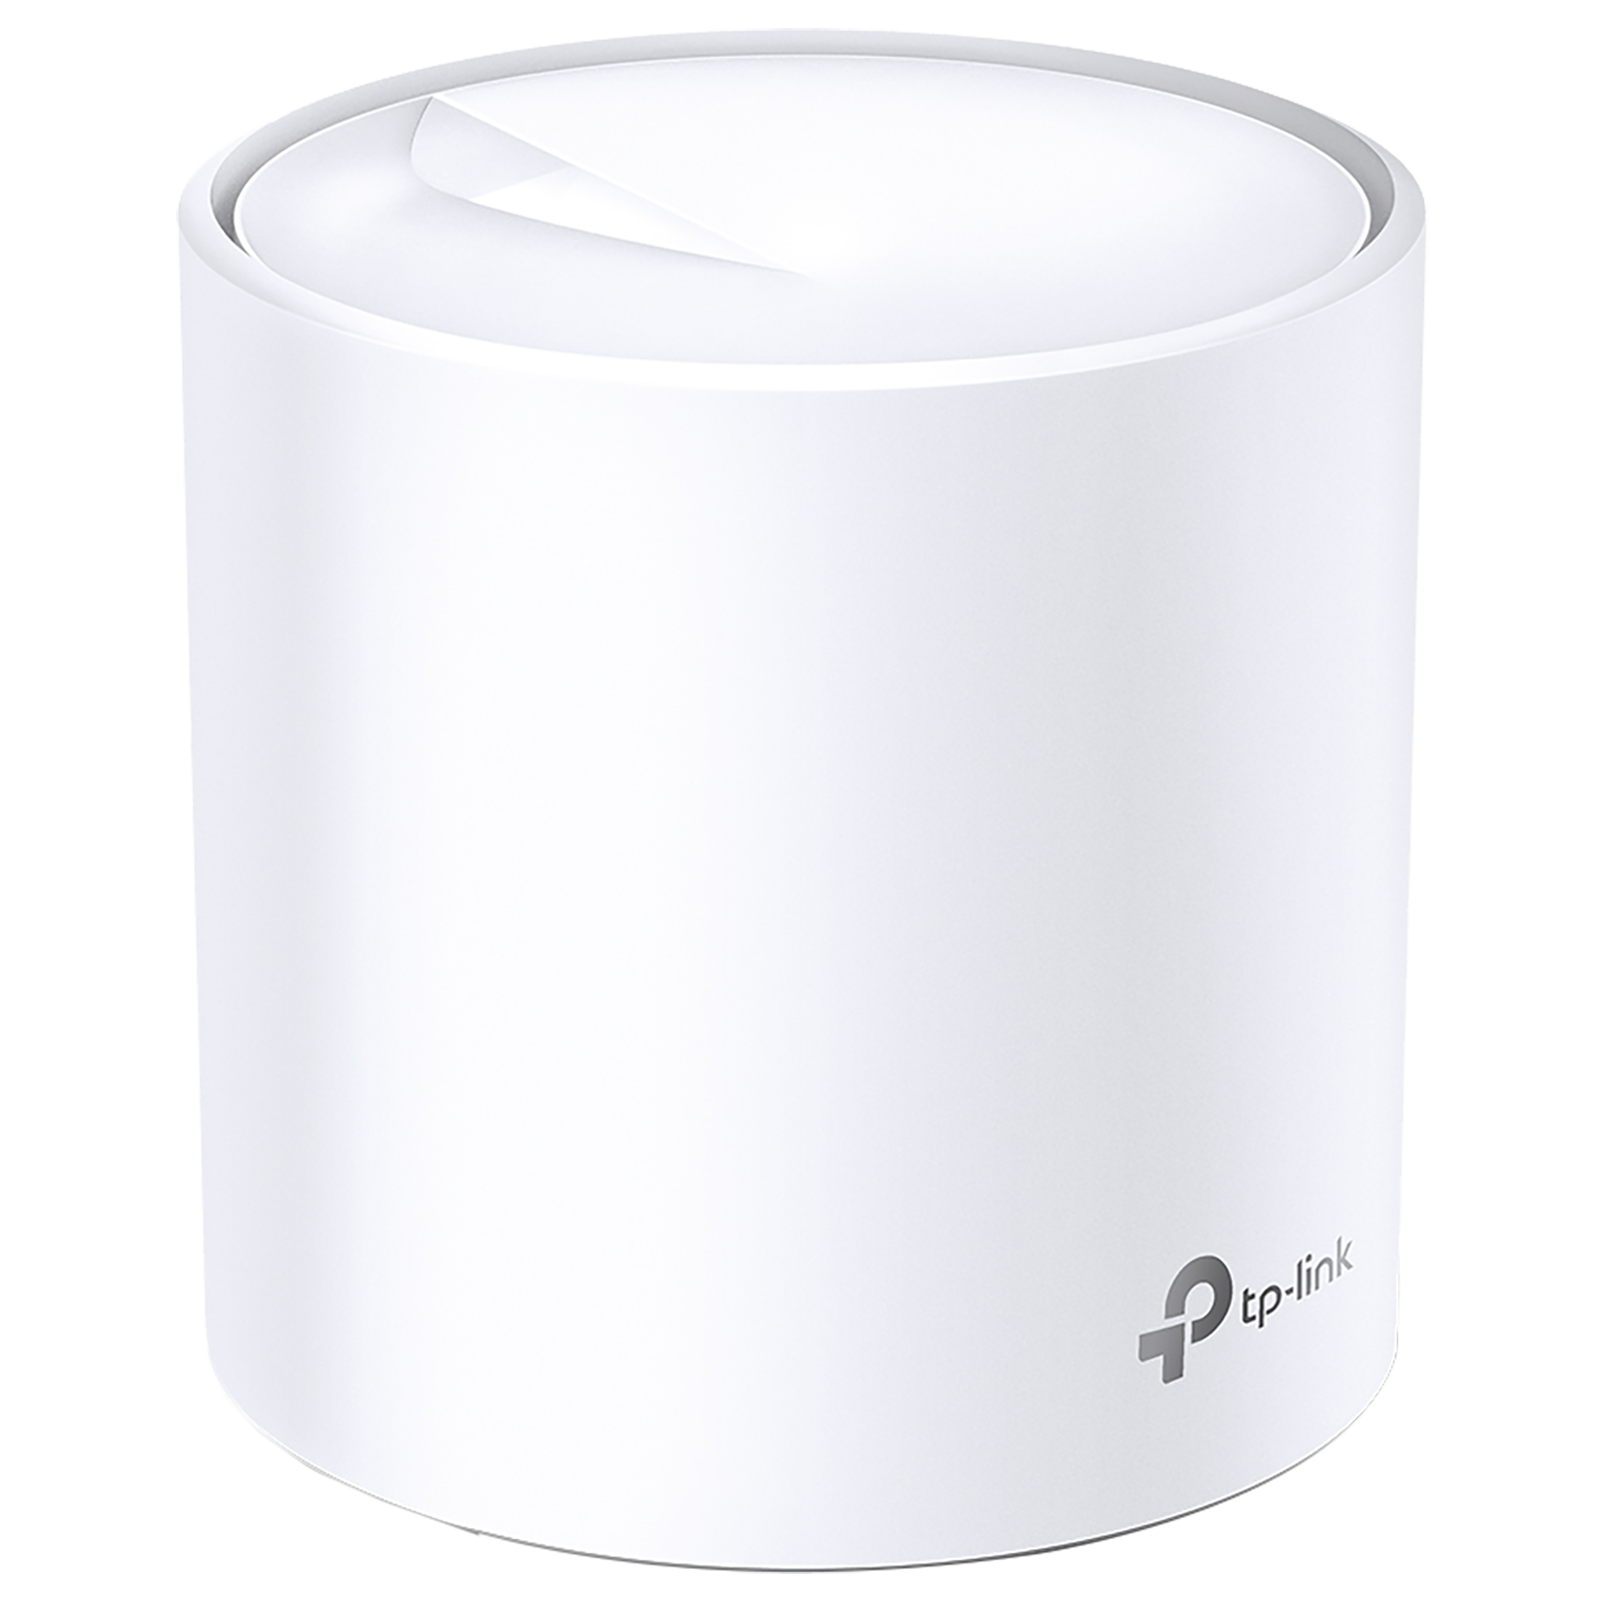 Tp-Link Deco X60 V2 (1-pack) Dual Band Pack of 1 Wi-Fi Home Mesh System (Ultra-Low Latency, 150503219, White)_1